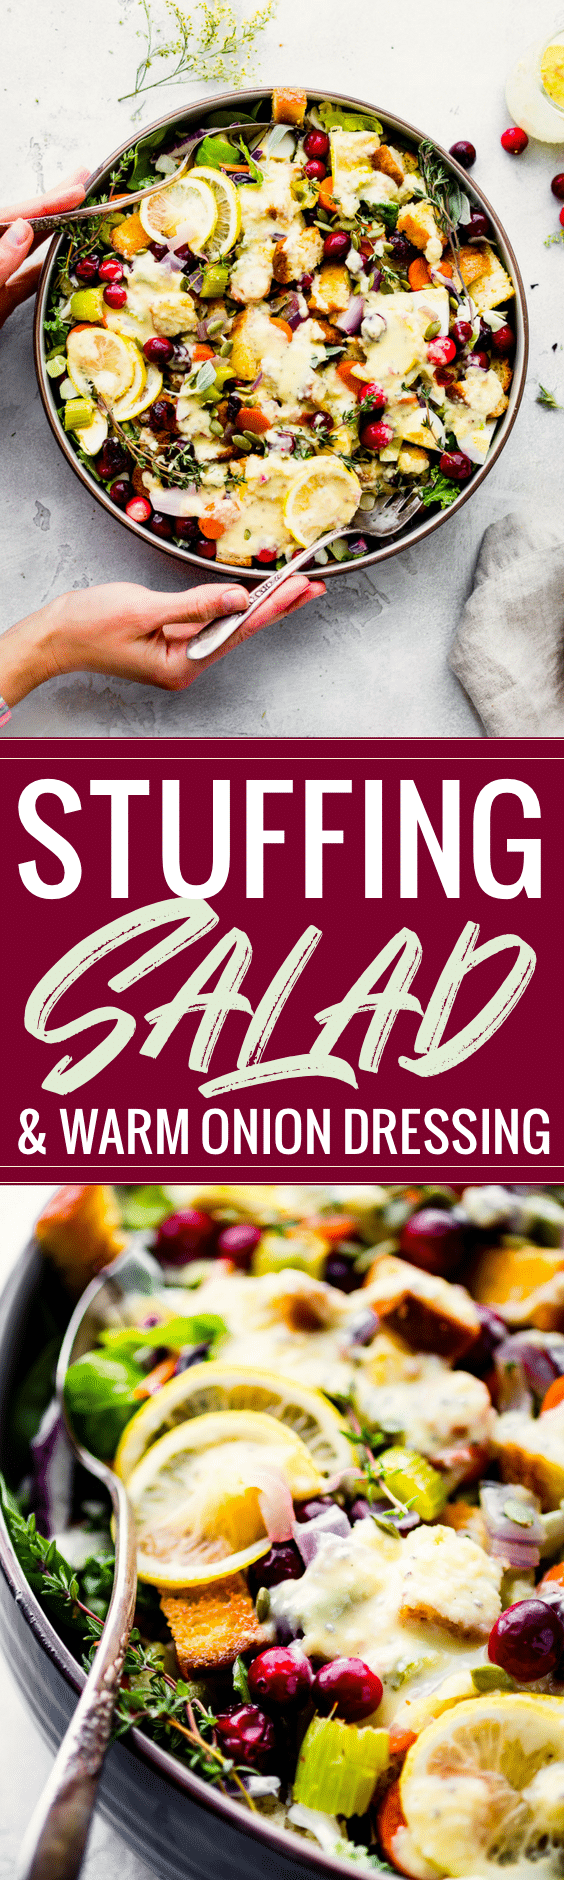 Gluten Free Stuffing Salad with Sweet Onion Dressing! A Gluten Free Stuffing recipe with a healthy twist! This easyHoliday side dish combines the comfort food of traditional stuffing with a healthy winter salad. Easy, dairy free, quick! www.cottercrunch.com